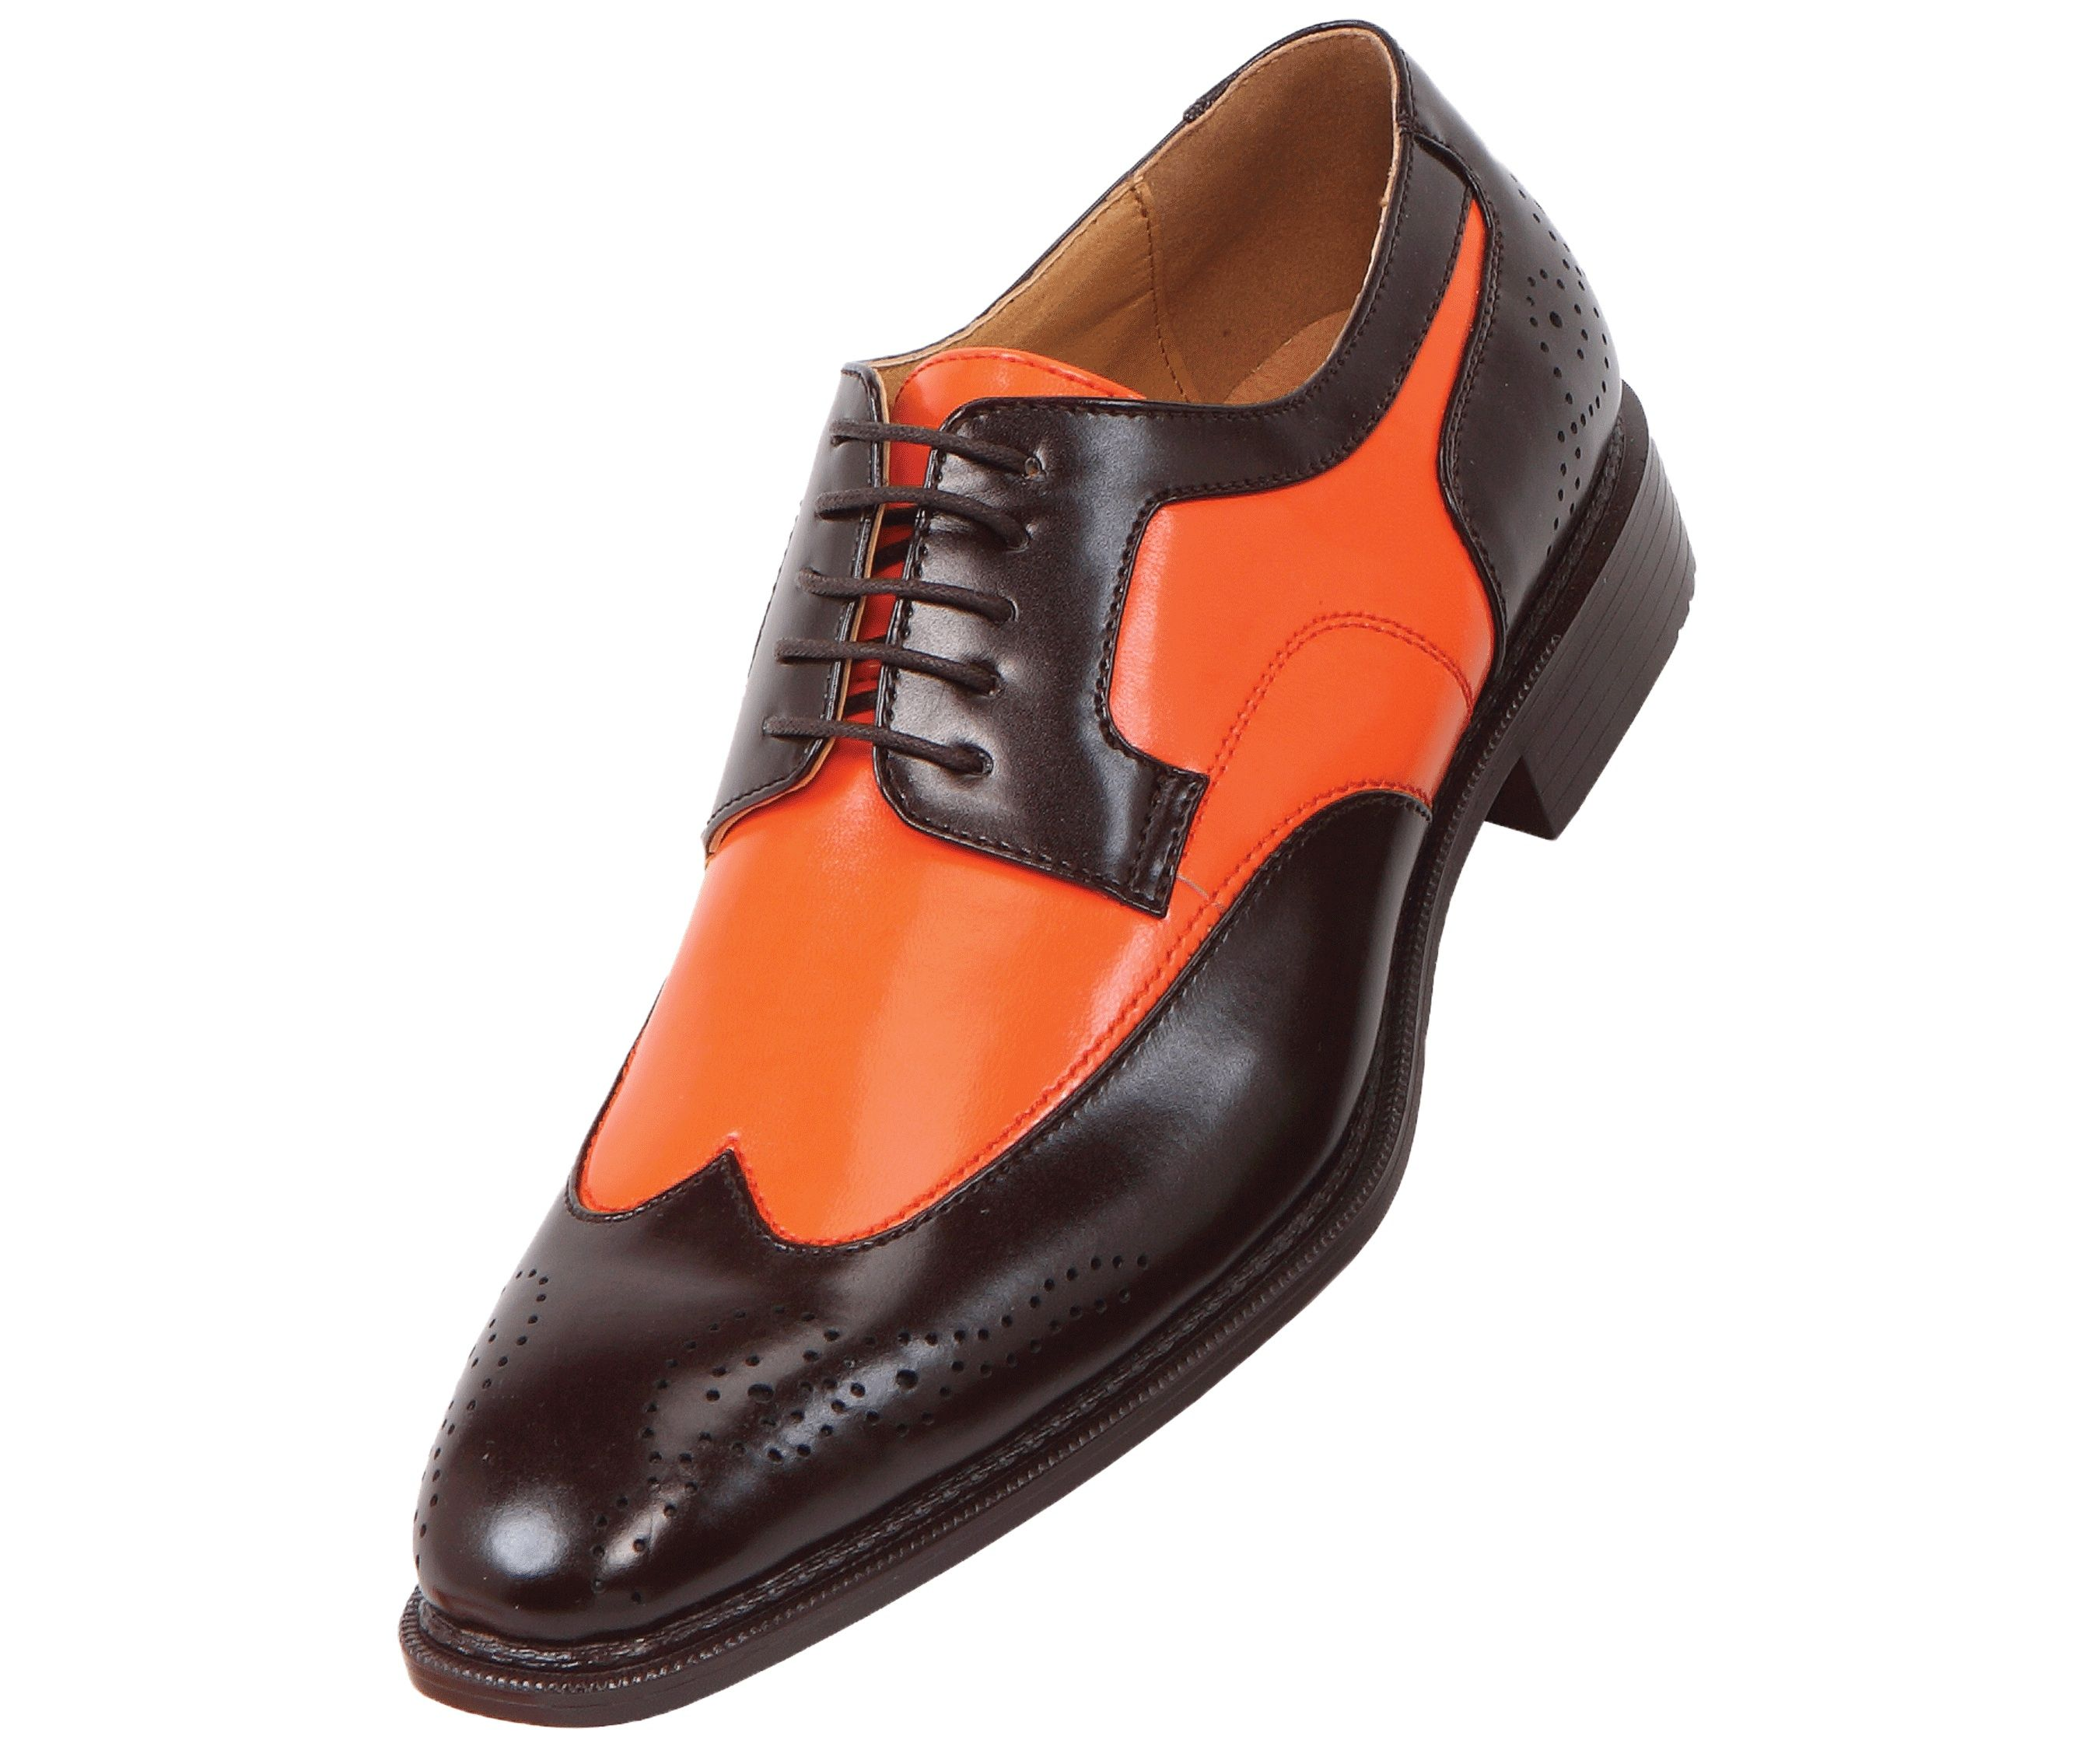 Bolano Mens Two-Tone Orange and Brown Oxford Dress Shoe: Style Nia-070